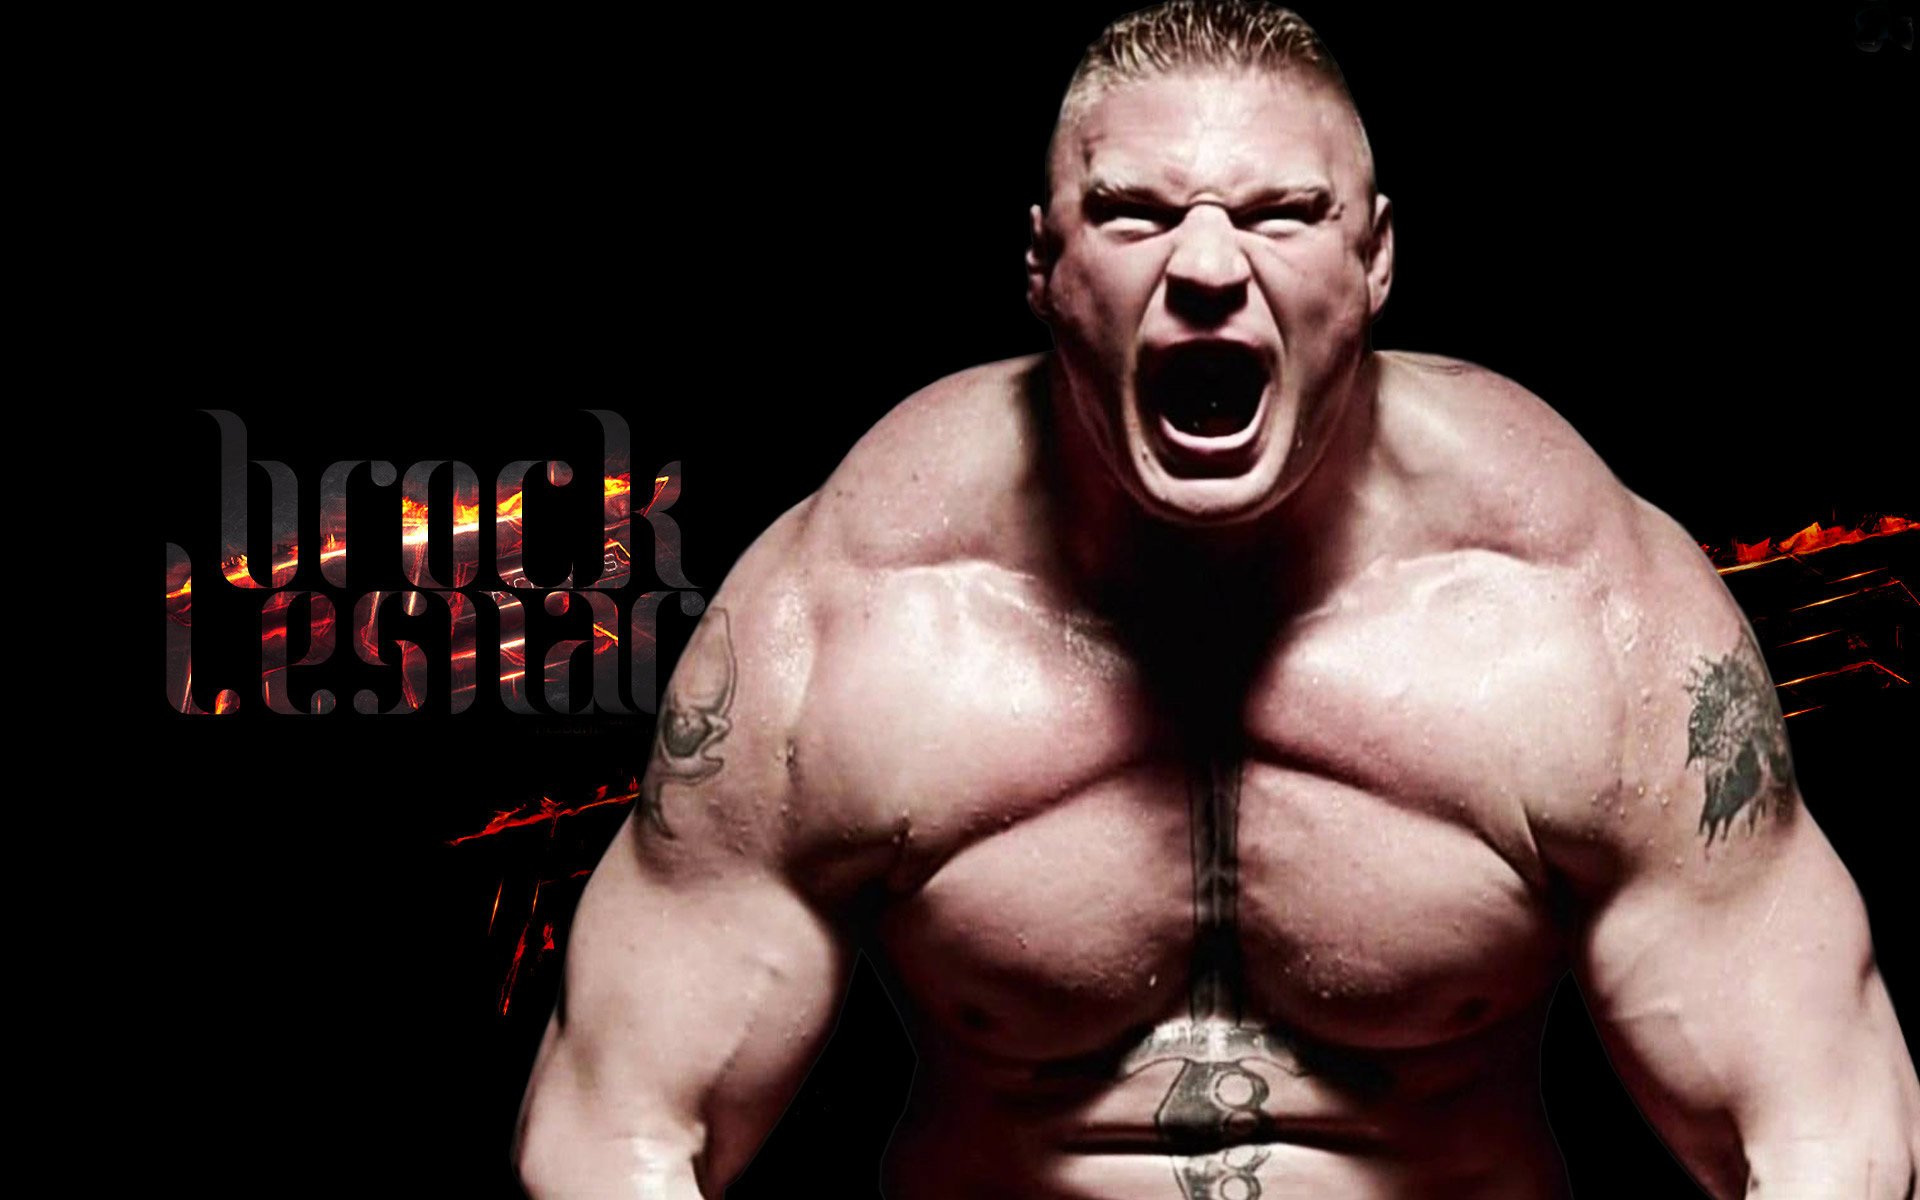 Brock Lesnar Best Hd Mobile Background Pictures